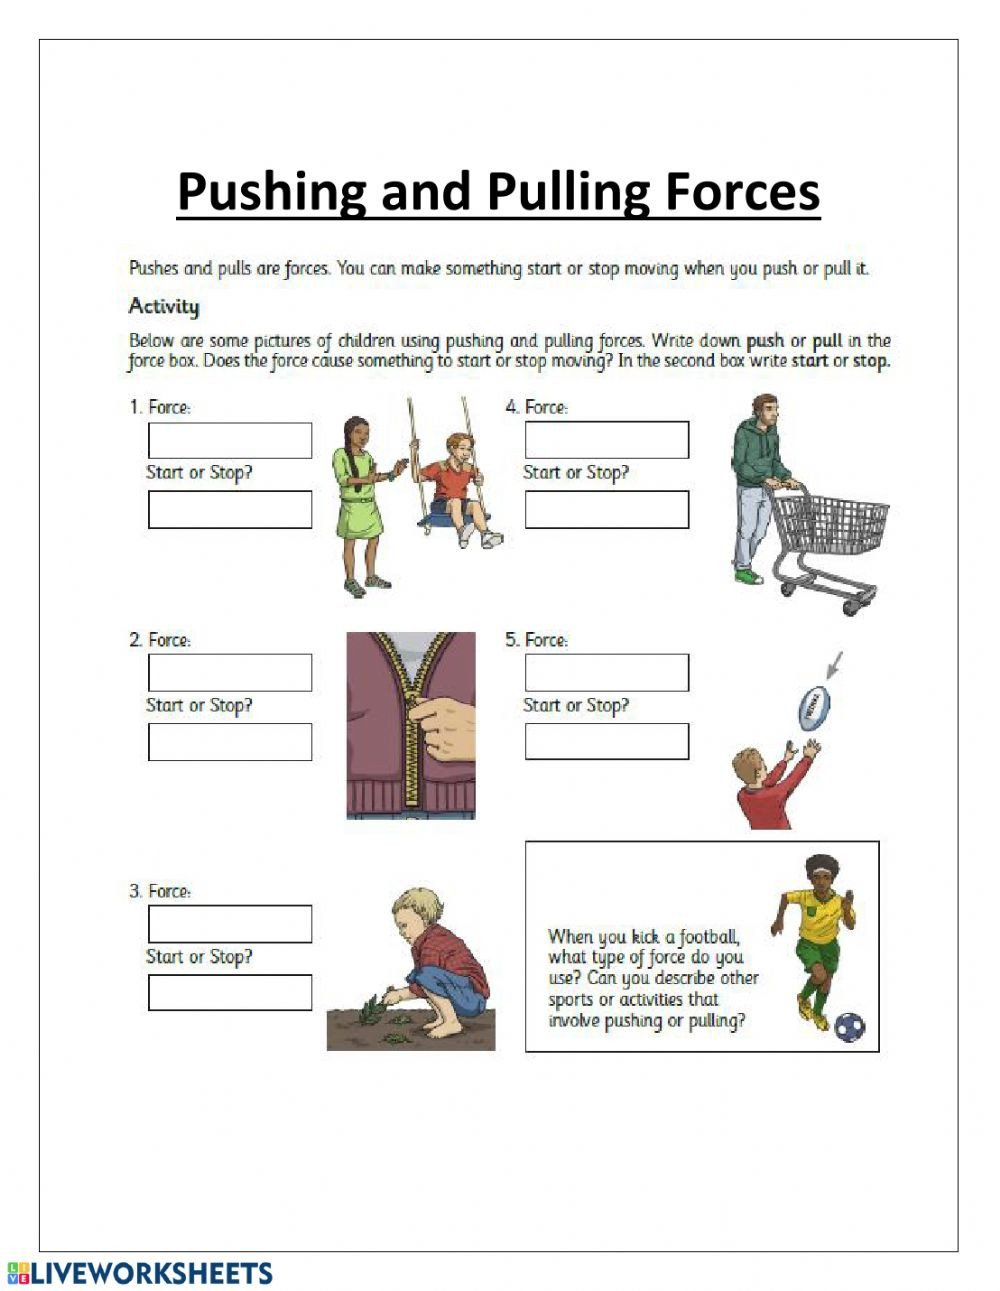 Push and Pull Worksheets Pushes and Pulls Interactive Worksheet